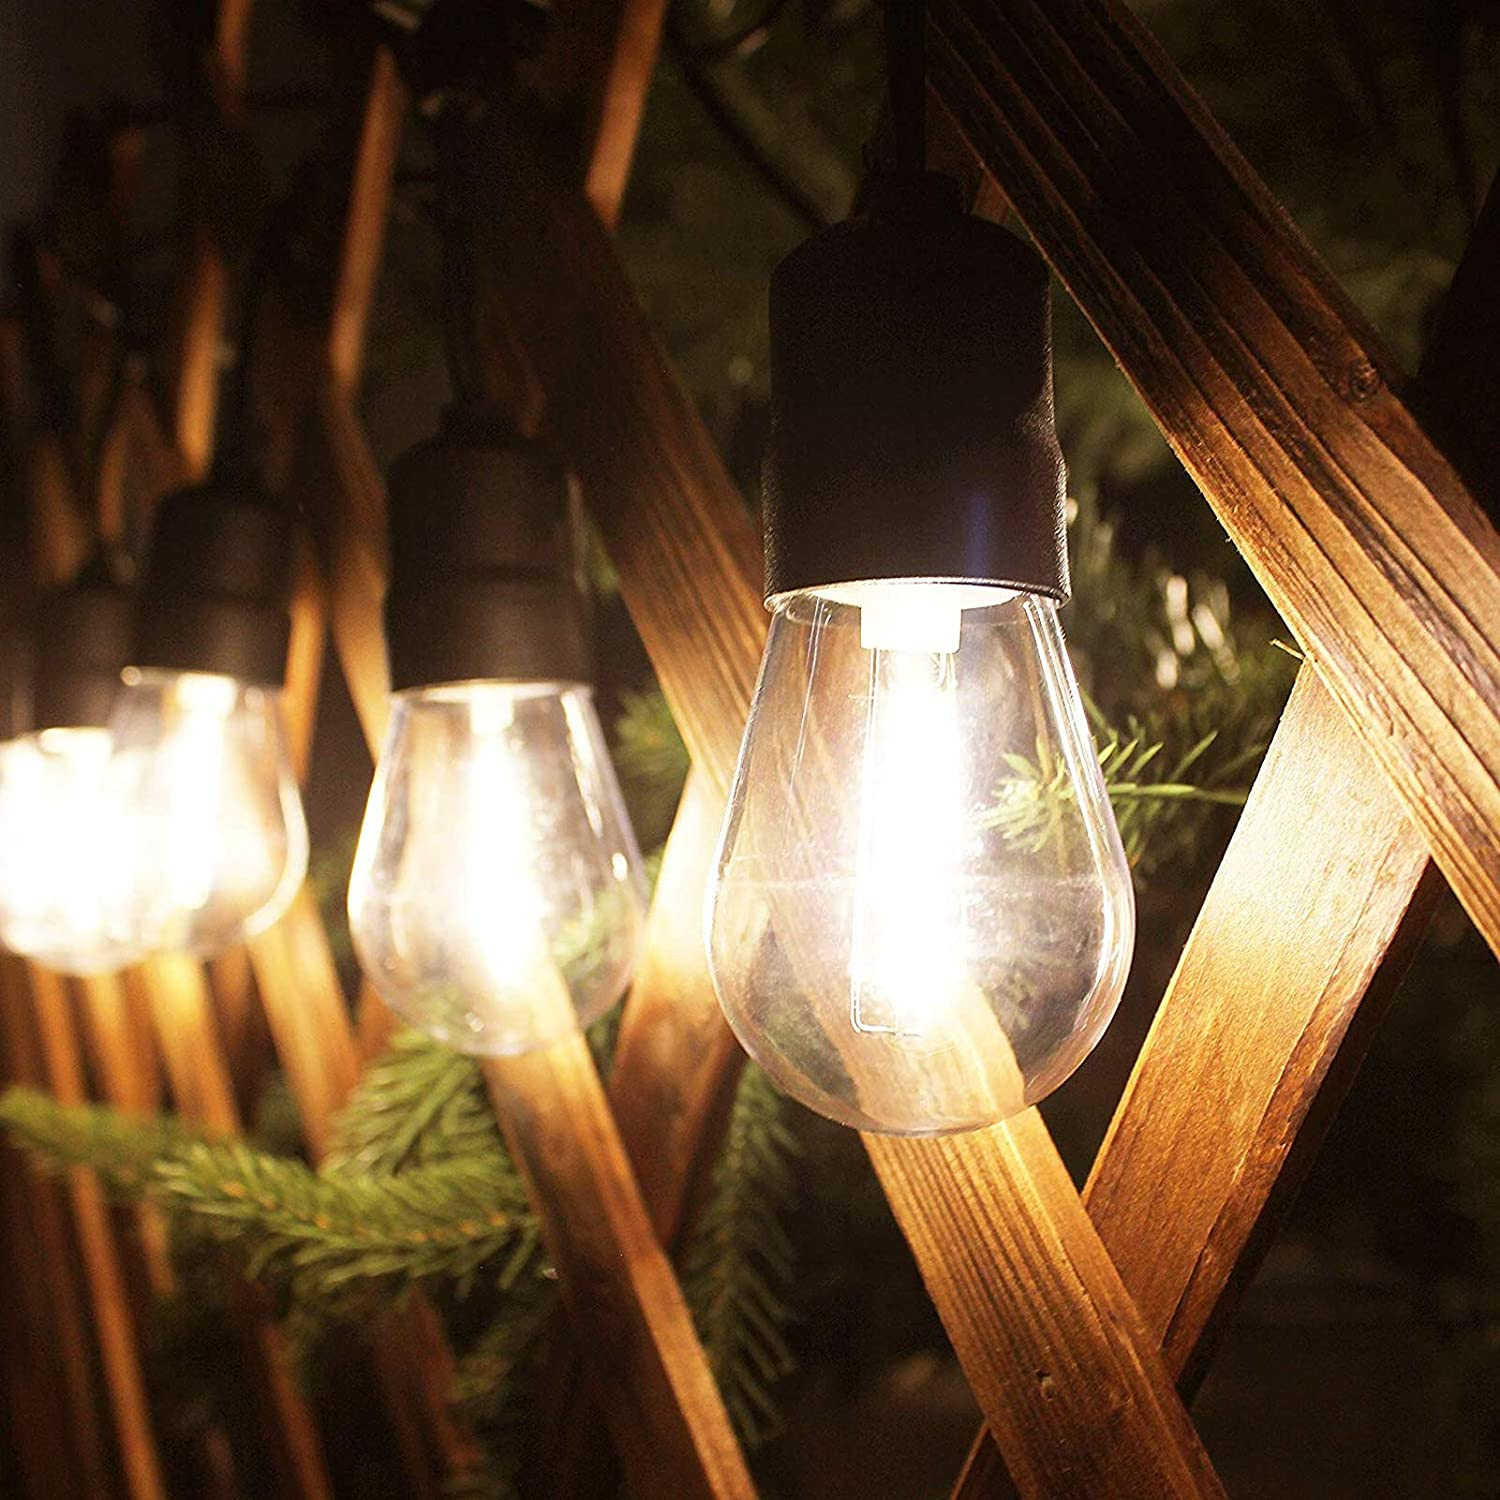 Amazon Com Safety Voltage 88ft Led Outdoor String Lights 25 Hanging Sockets With Shatterproof S14 Light Bulbs Indoor Outdoor For Backyard Garden Patio Pergola Gazebo Bistro Bedroom Christmas Wedding Party Home Improvement